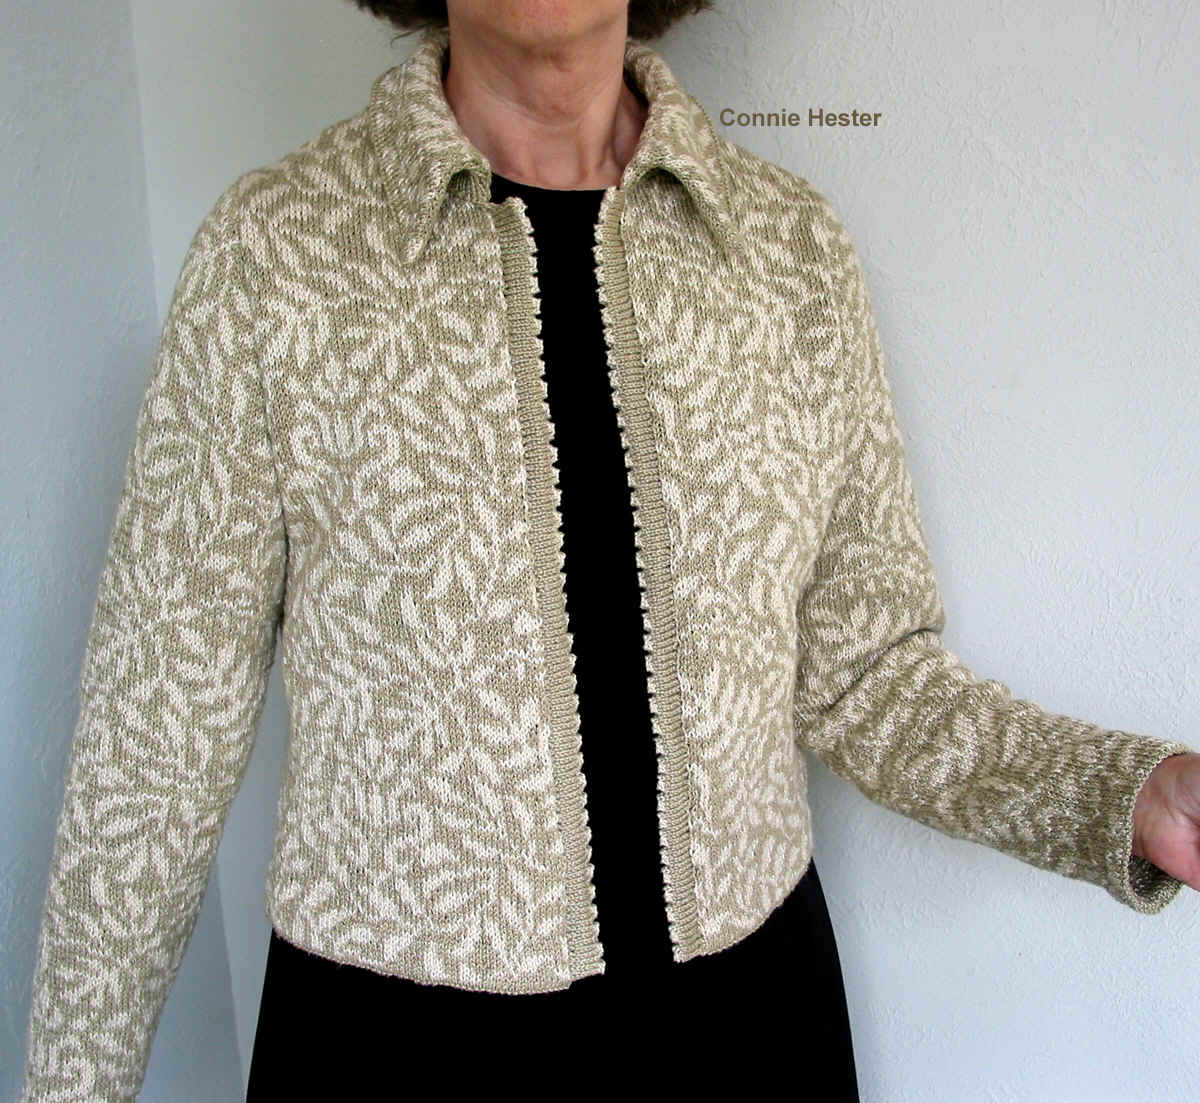 Knitted Jacket Pattern : Stranded Knit Jacket Pattern